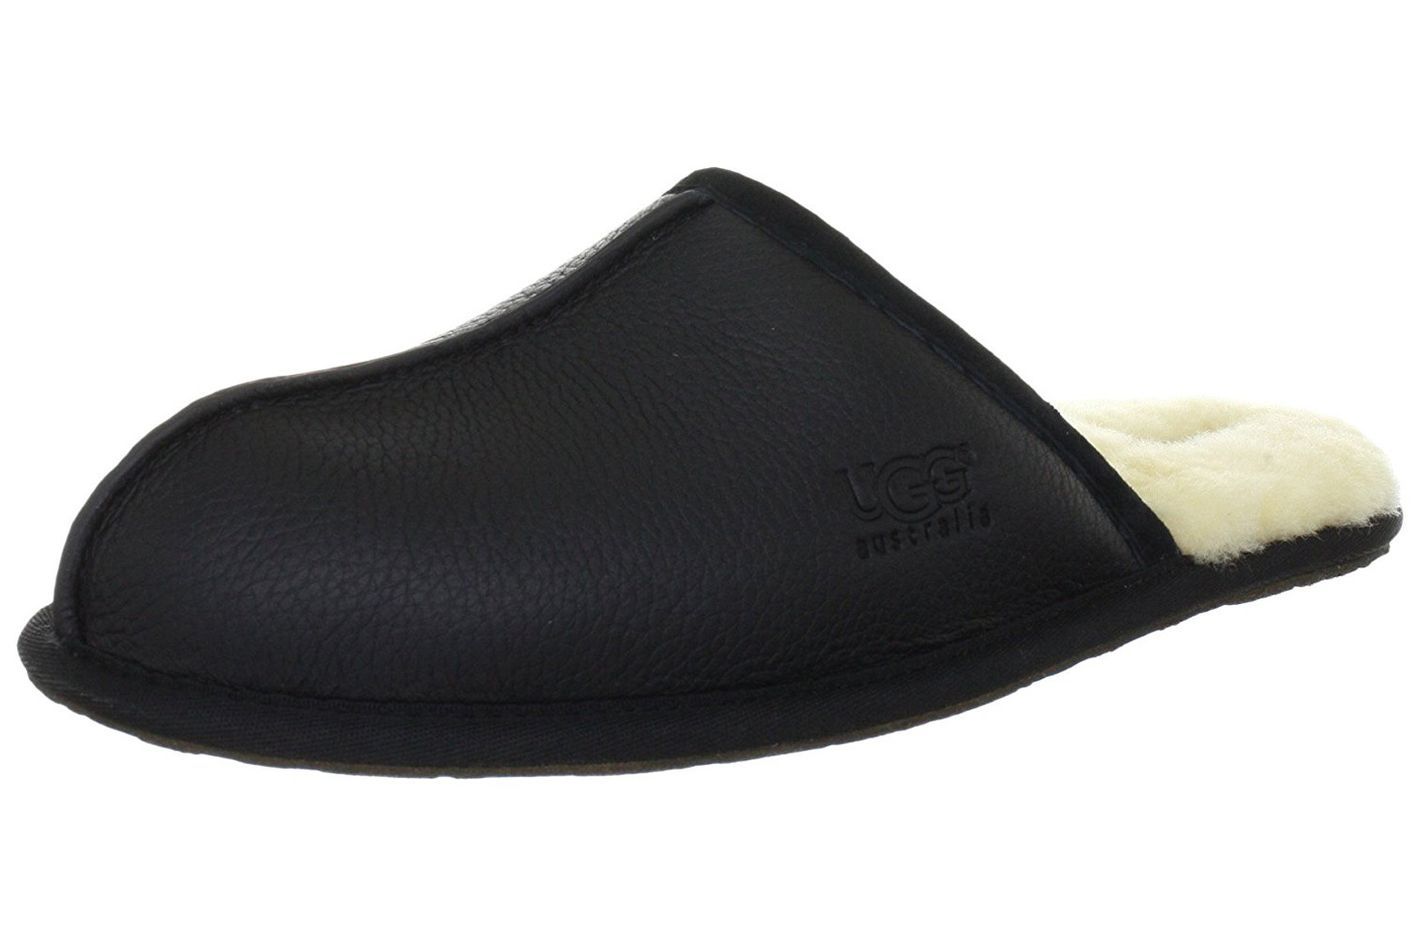 Ugg Australia Scuff Slip-On Shoes